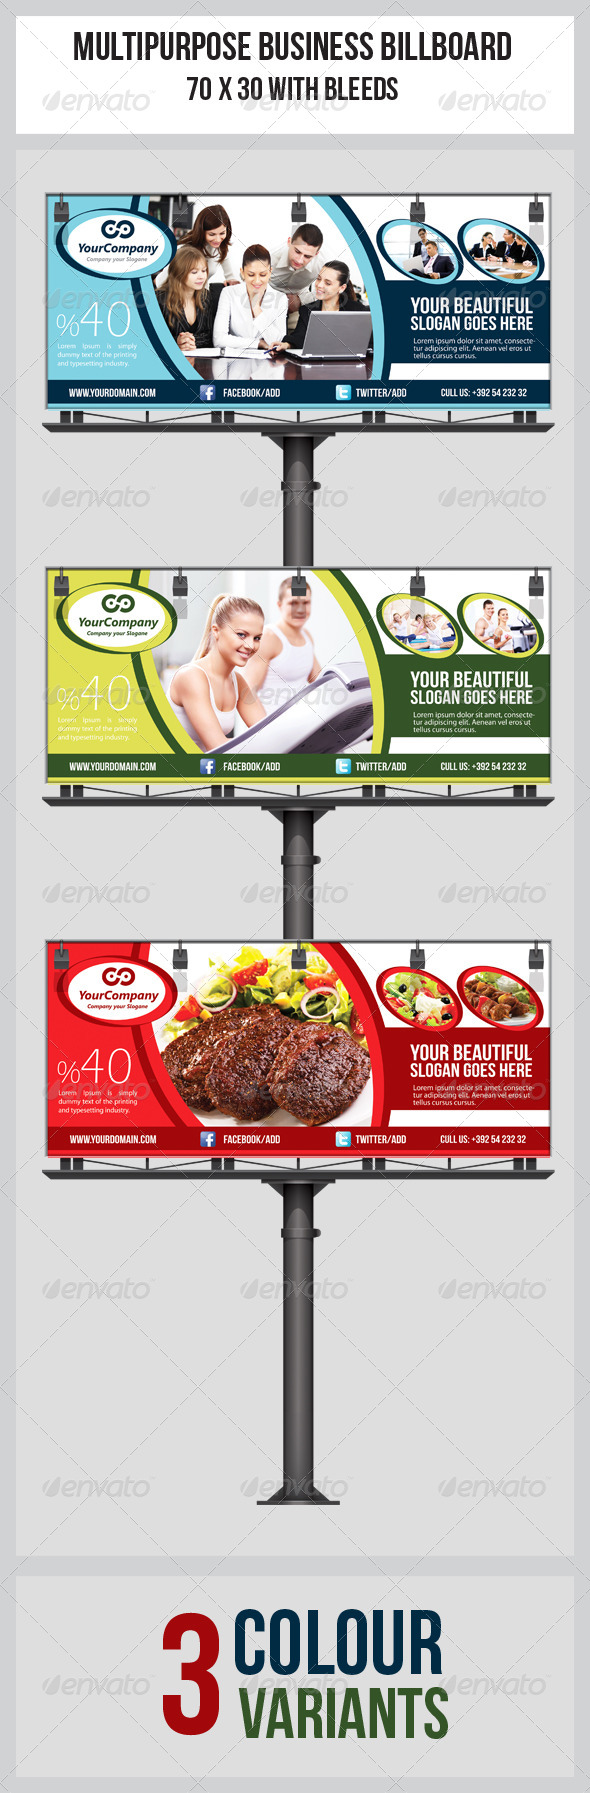 Multipurpose Business Billboard Template - Signage Print Templates